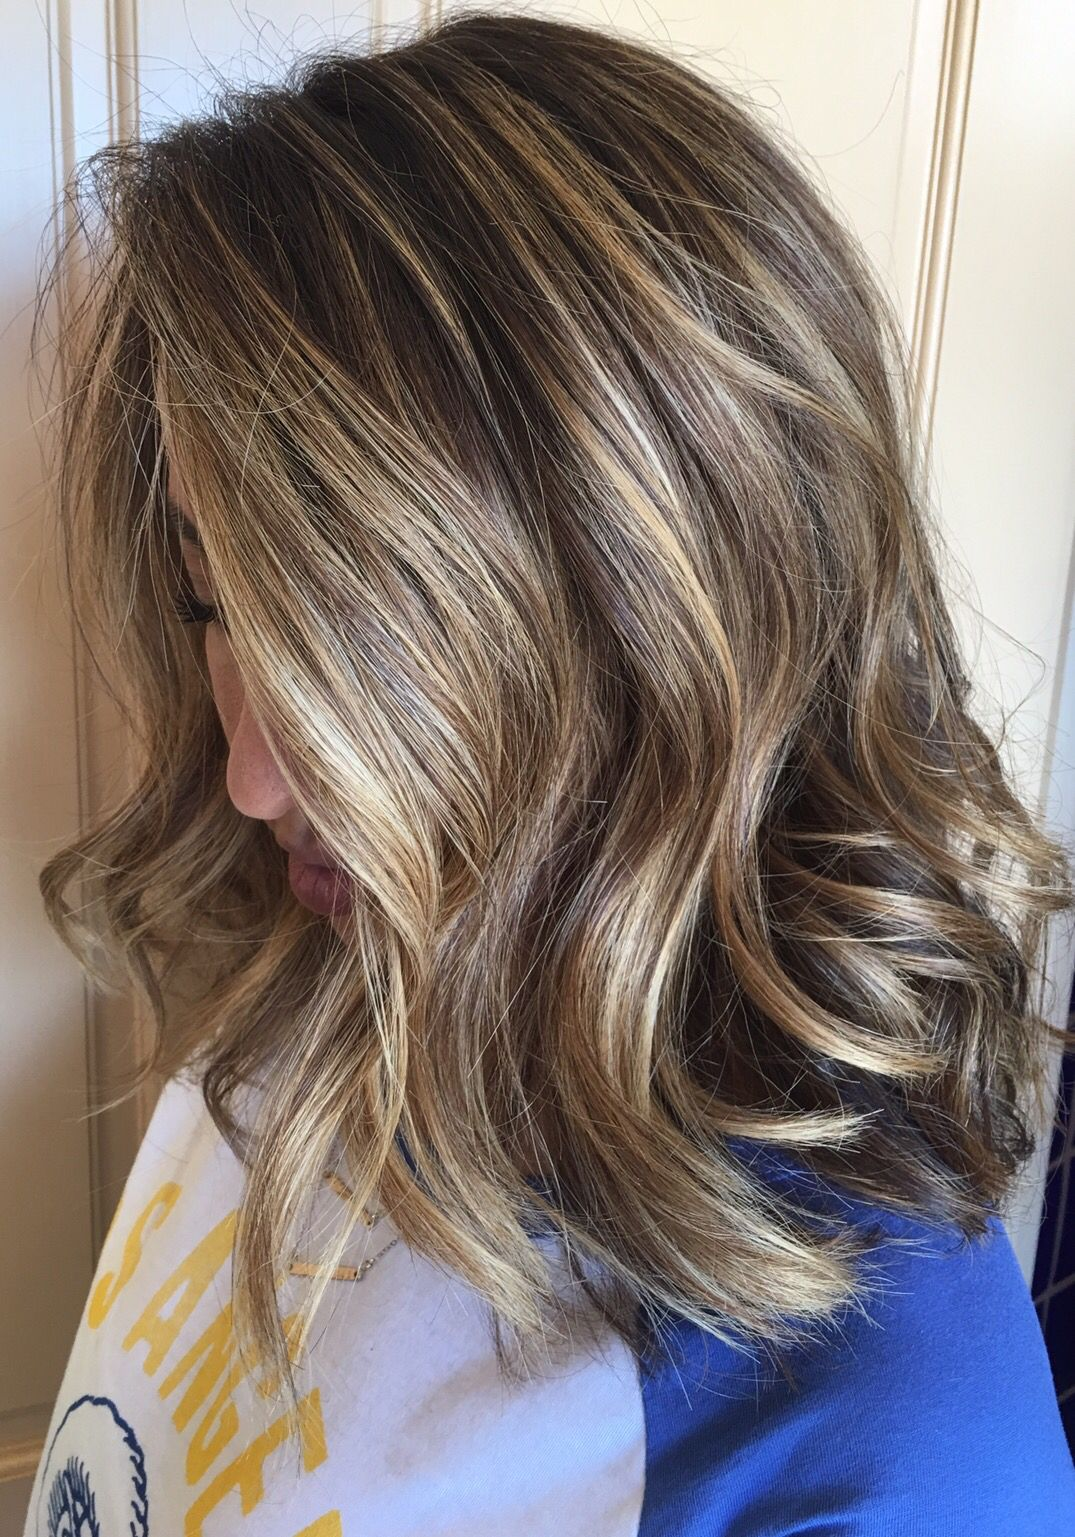 Highlights Blond A Side Of Blonde W Brunette Champagne Highlights Melted